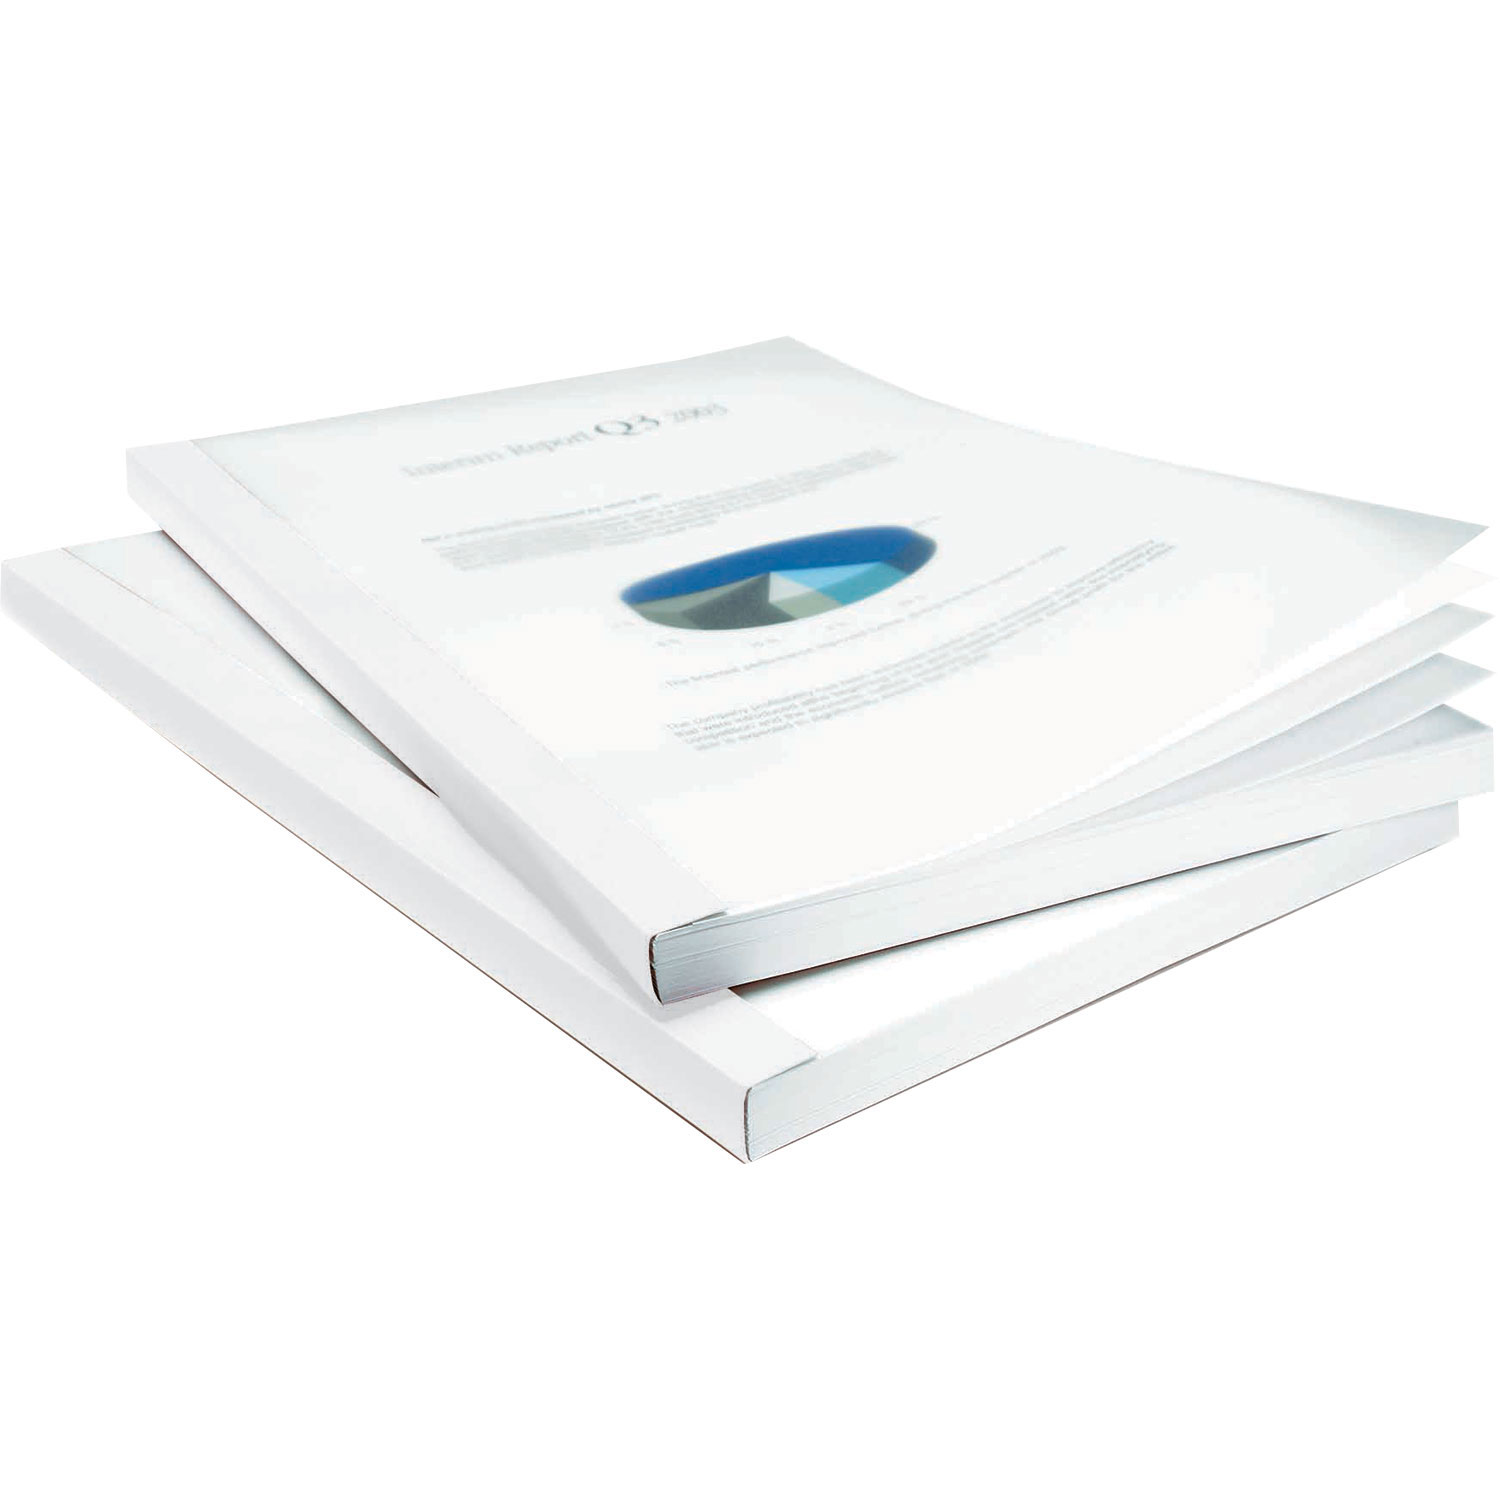 Bindomatic Classic White Thermal Binding Covers